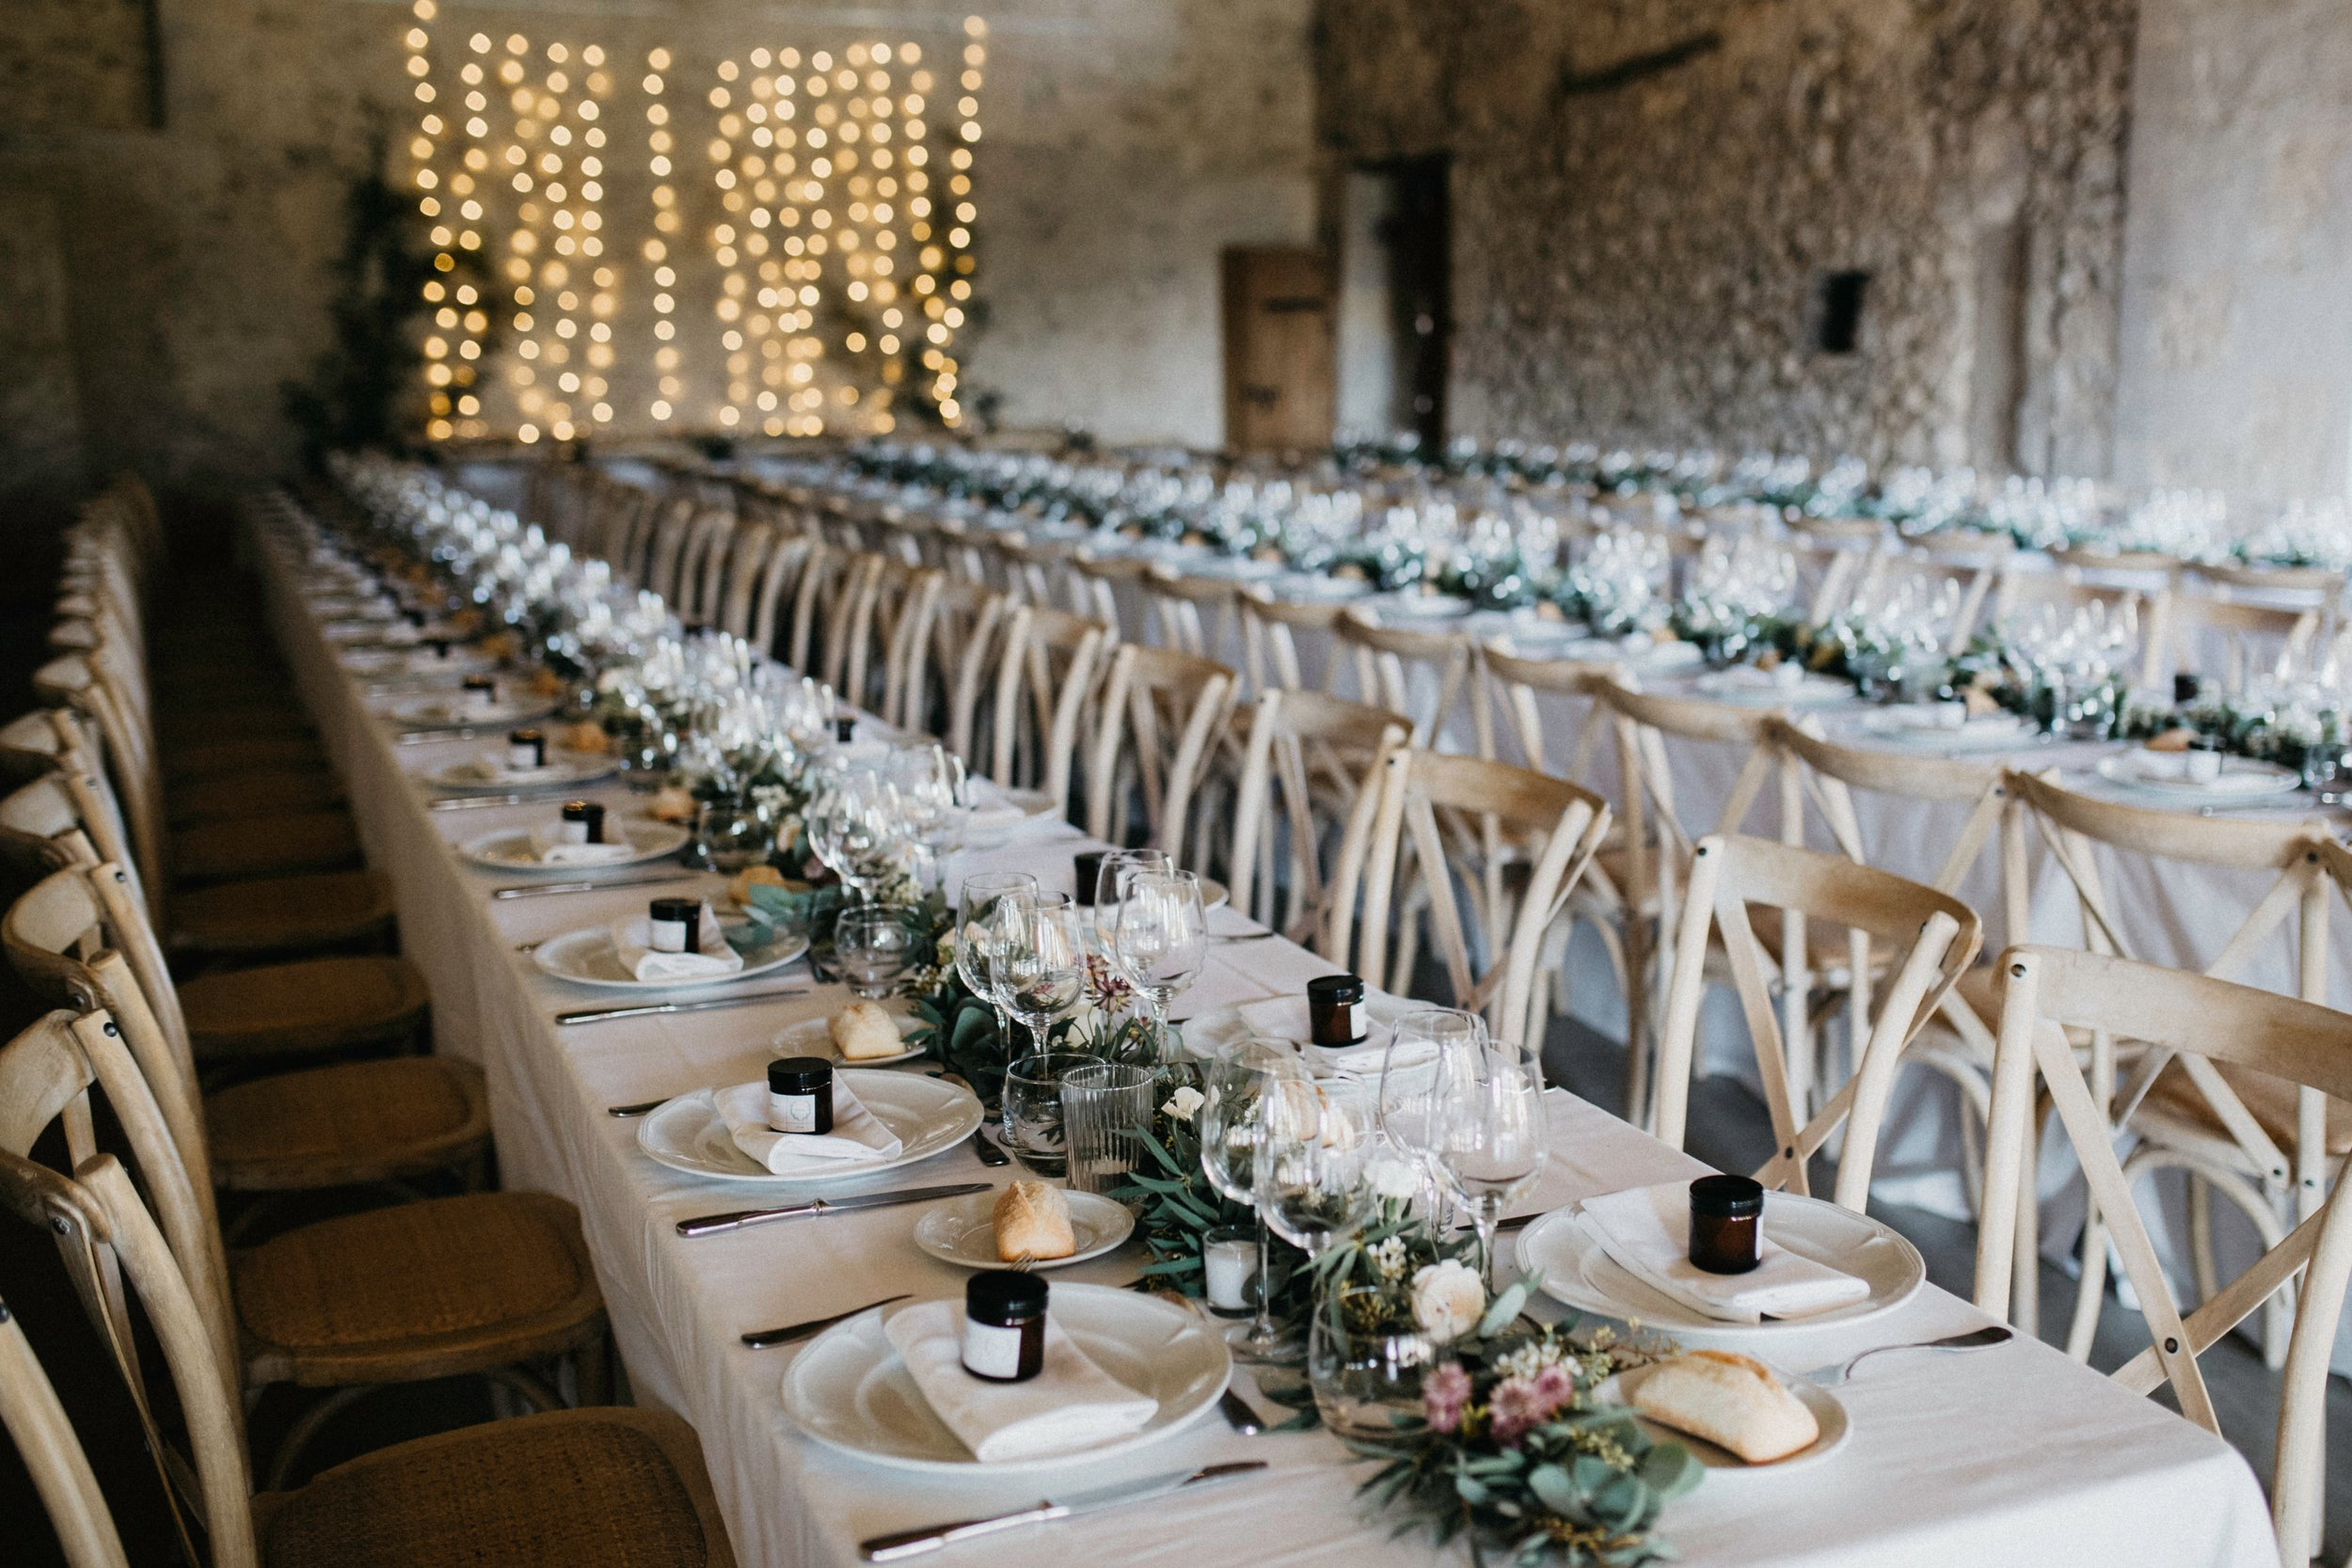 5 Easy Ways to Make Your Event Eco-Friendly